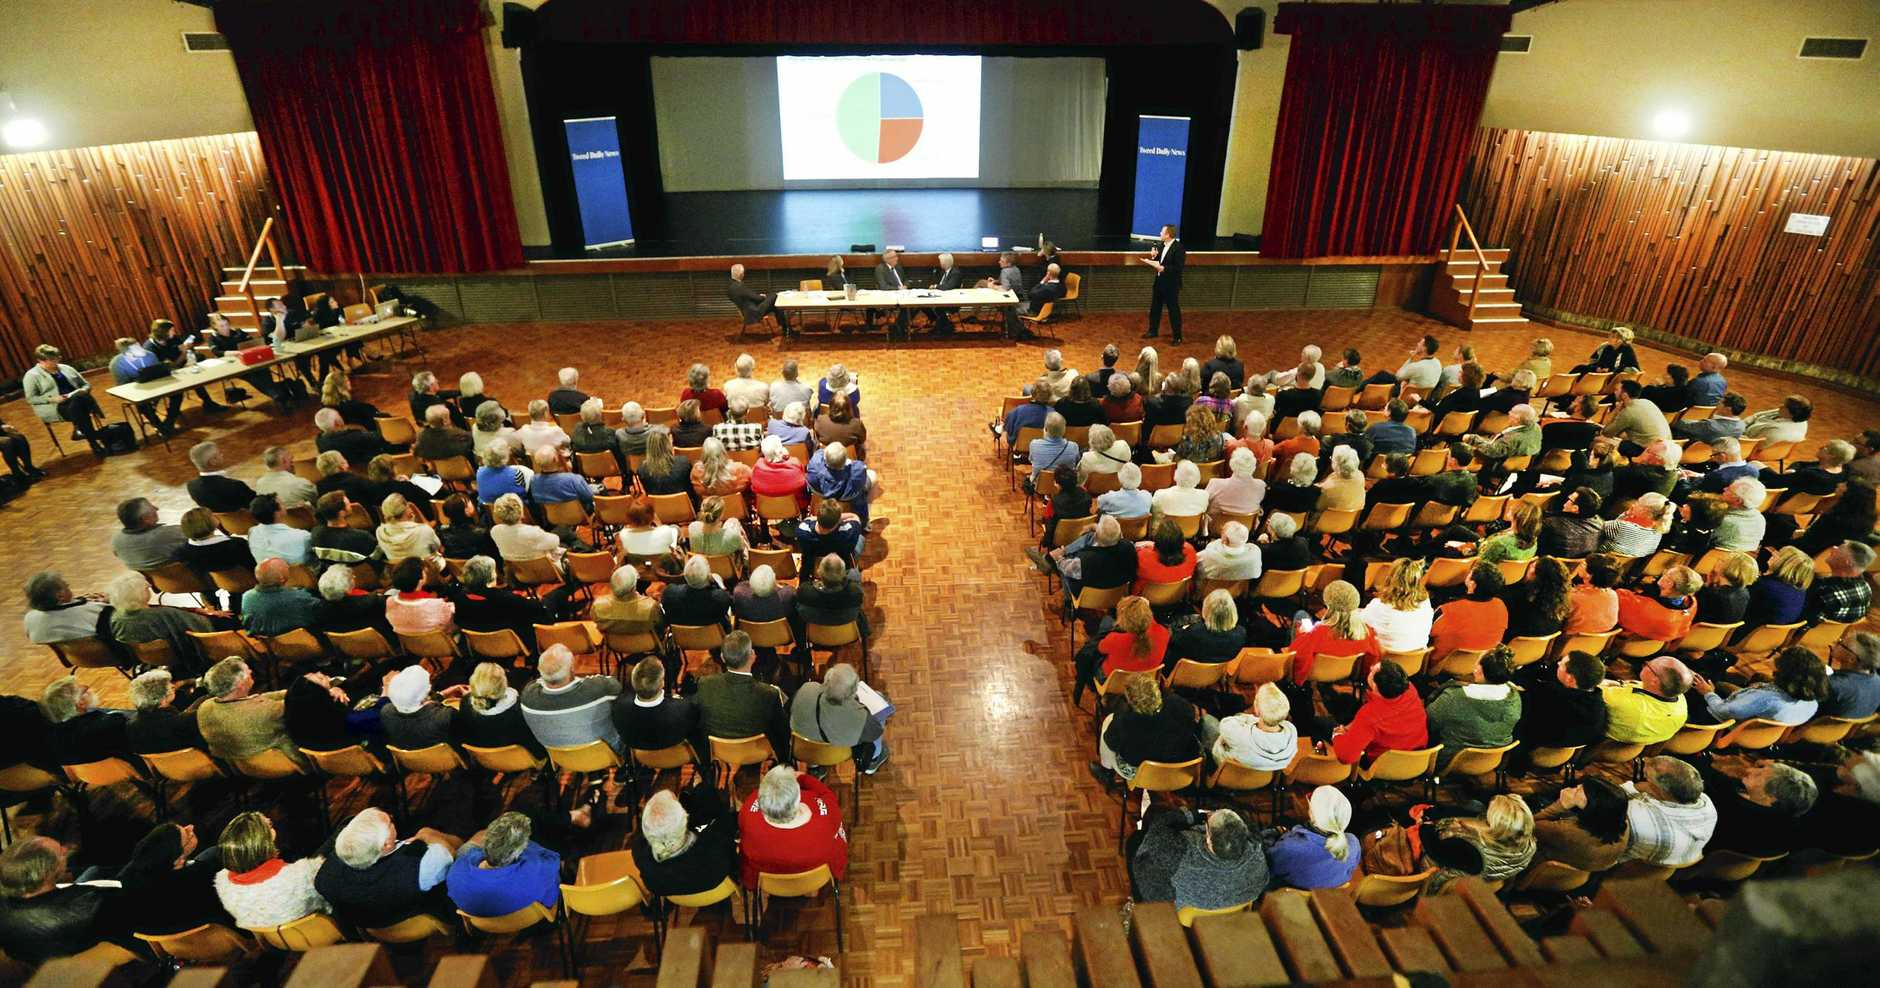 More than 200 people have gathered at the Tweed Civic Centre to share their thoughts on the Tweed Valley Hospital.